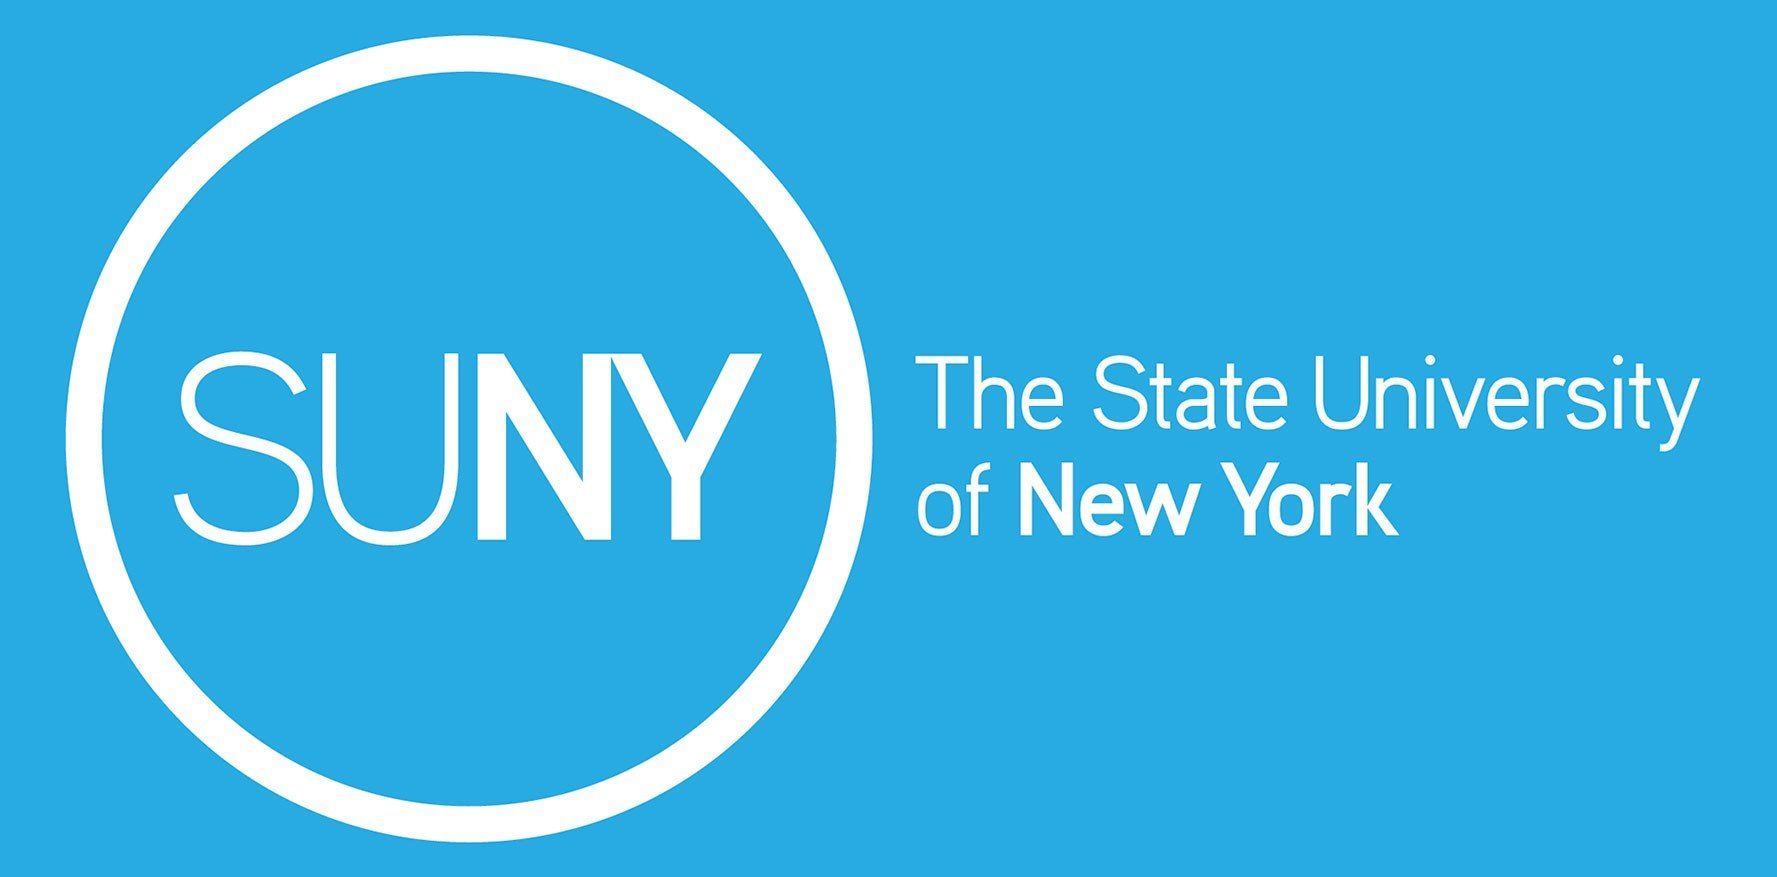 Cuomo administration launches program to increase faculty diversity at SUNY schools